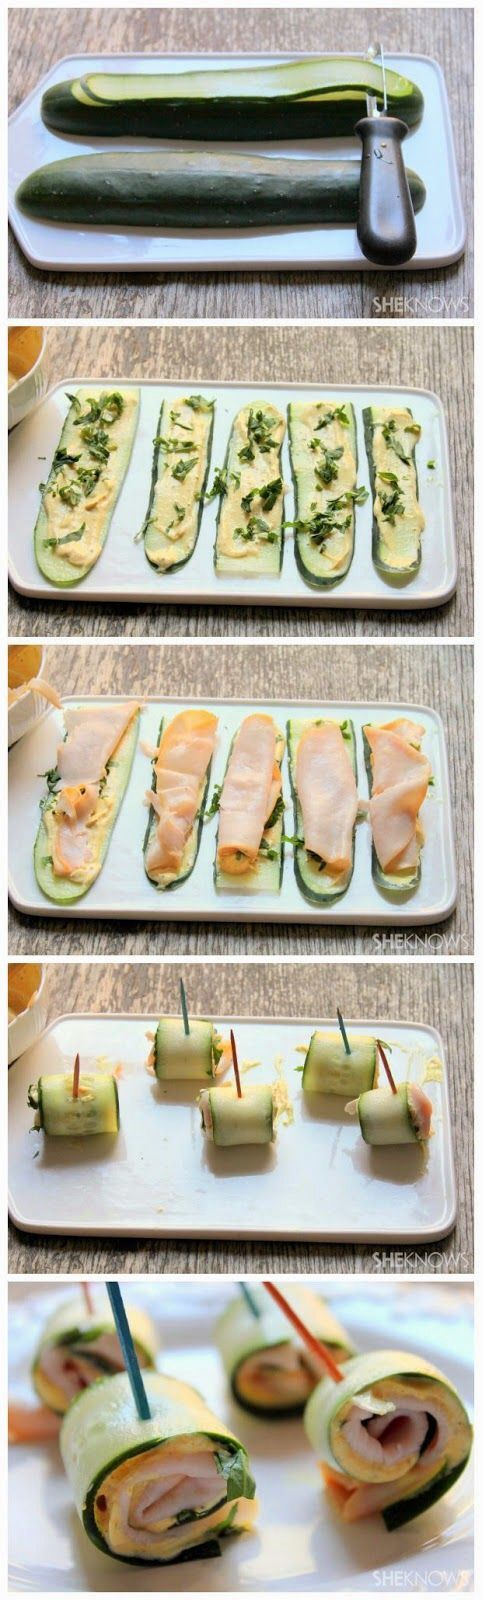 Cucumber/turkey/humus roll-ups.